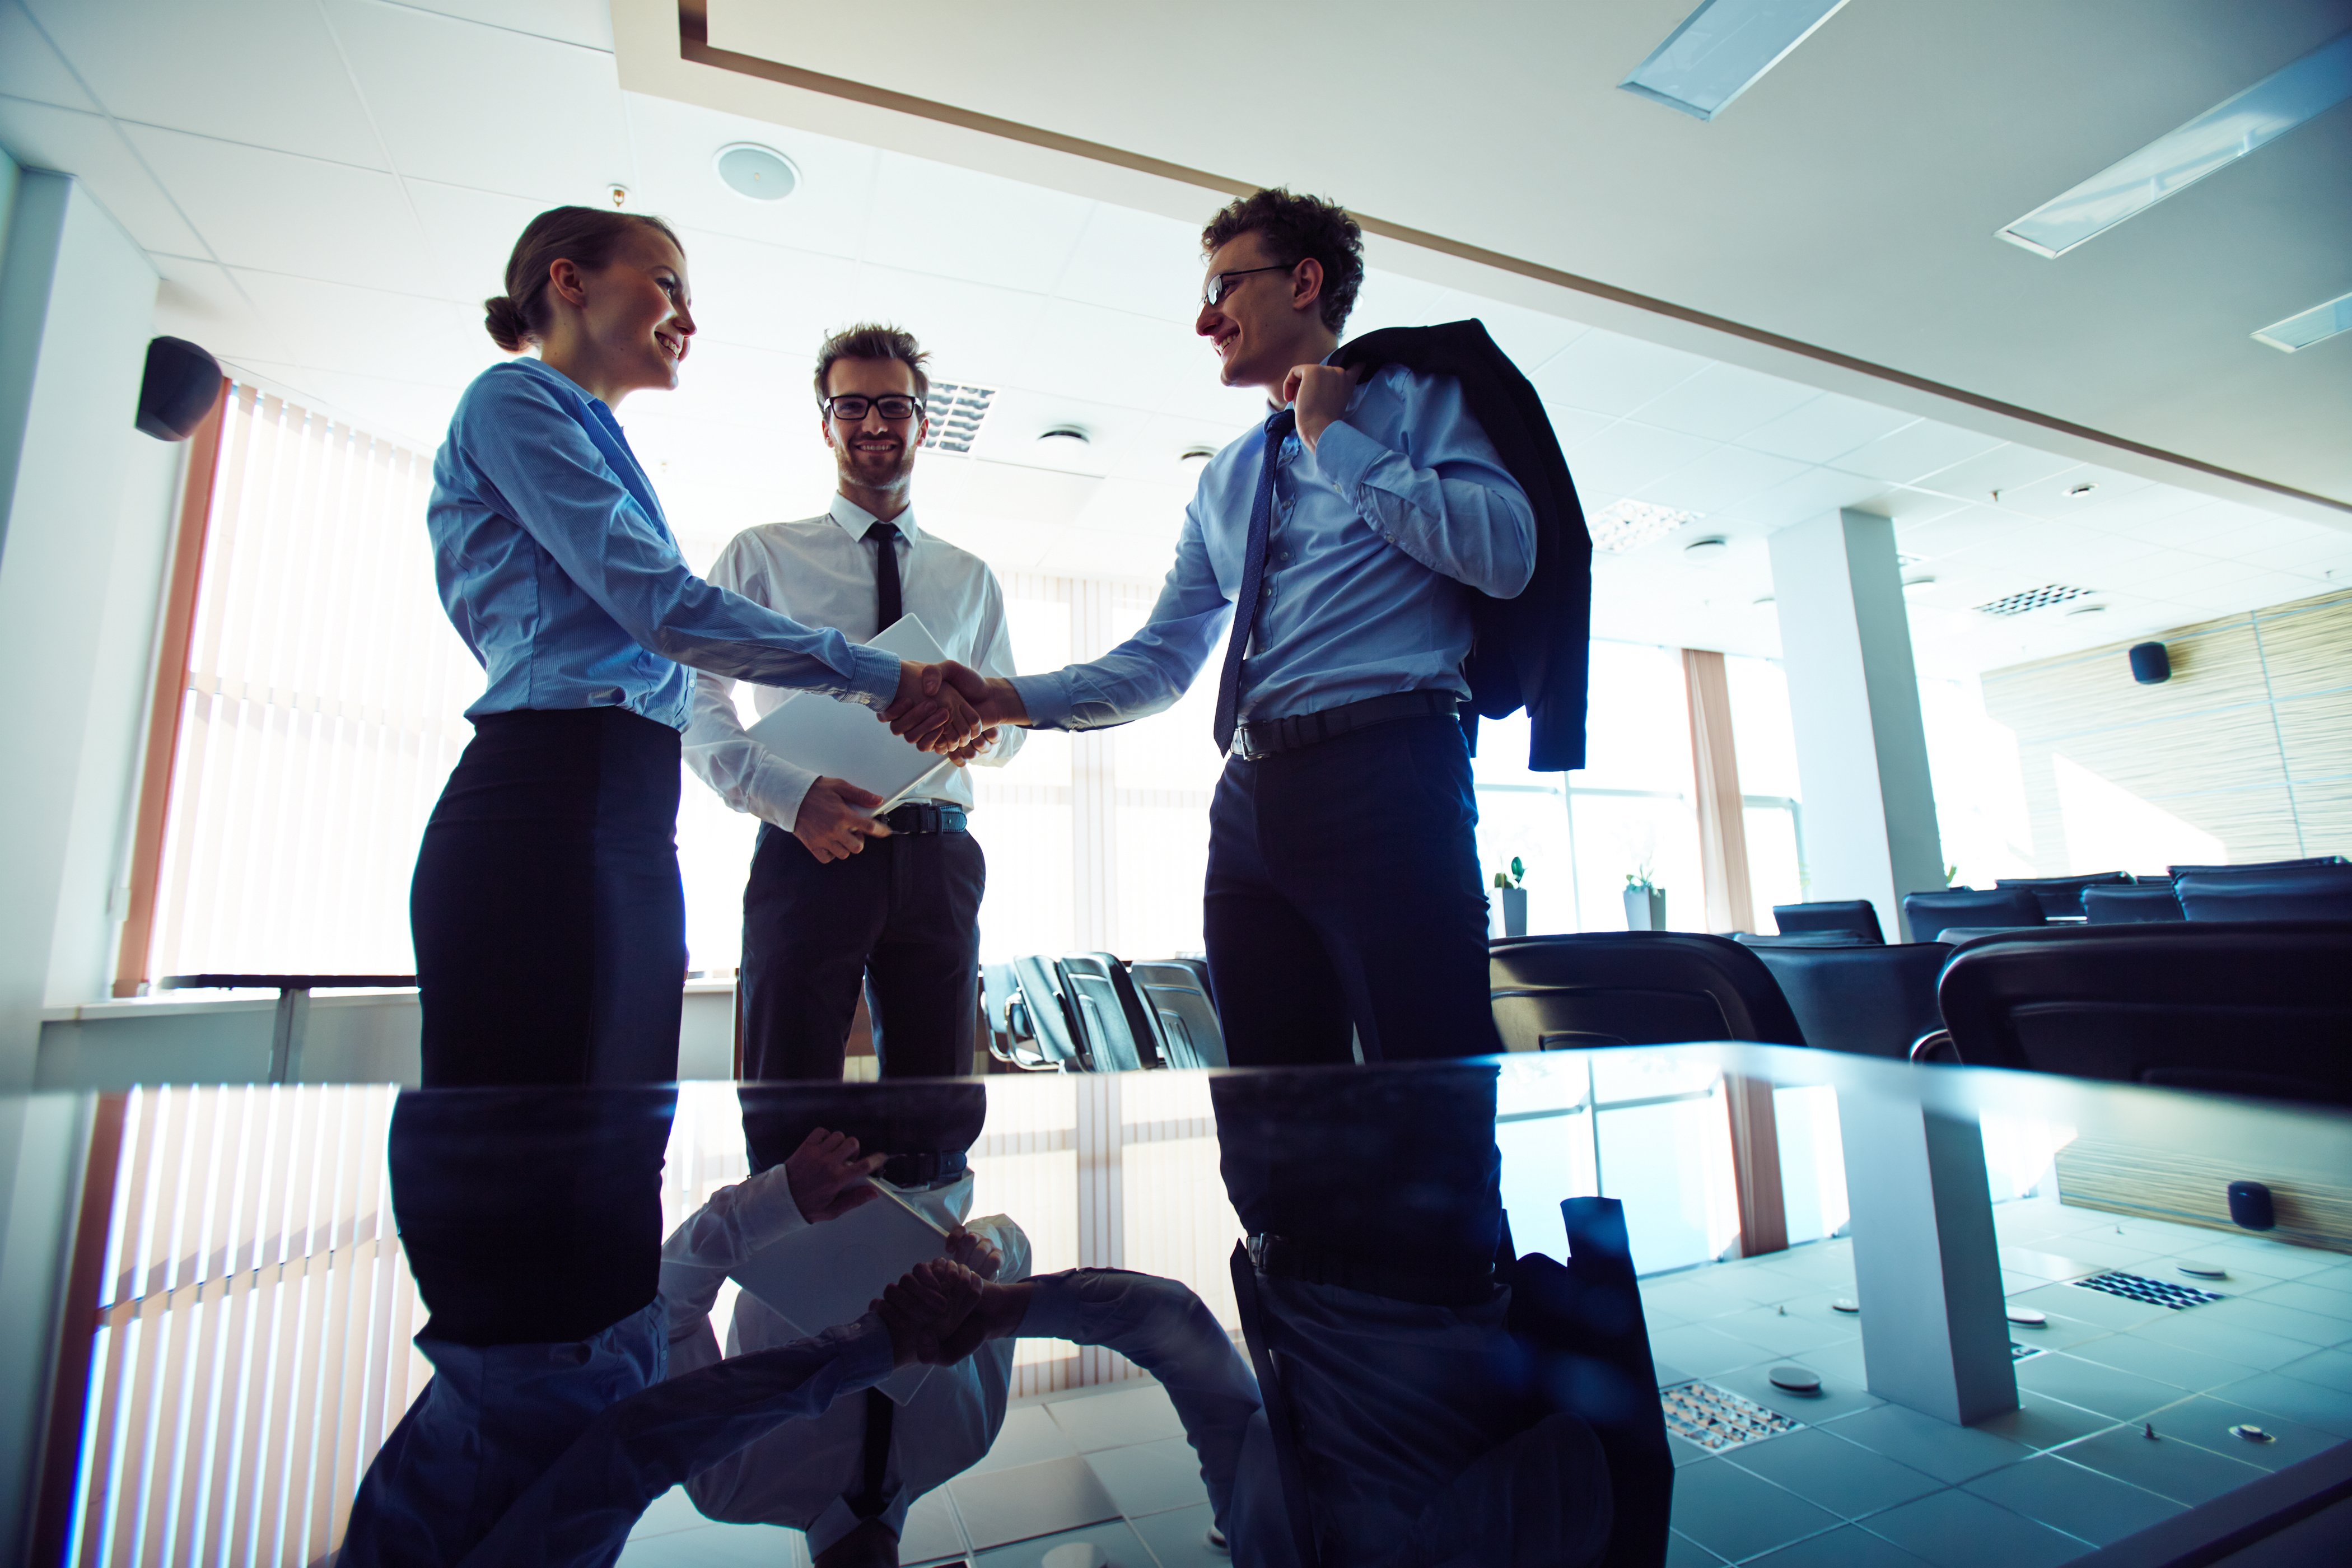 How to Choose the Financial Advisor that is Right for You